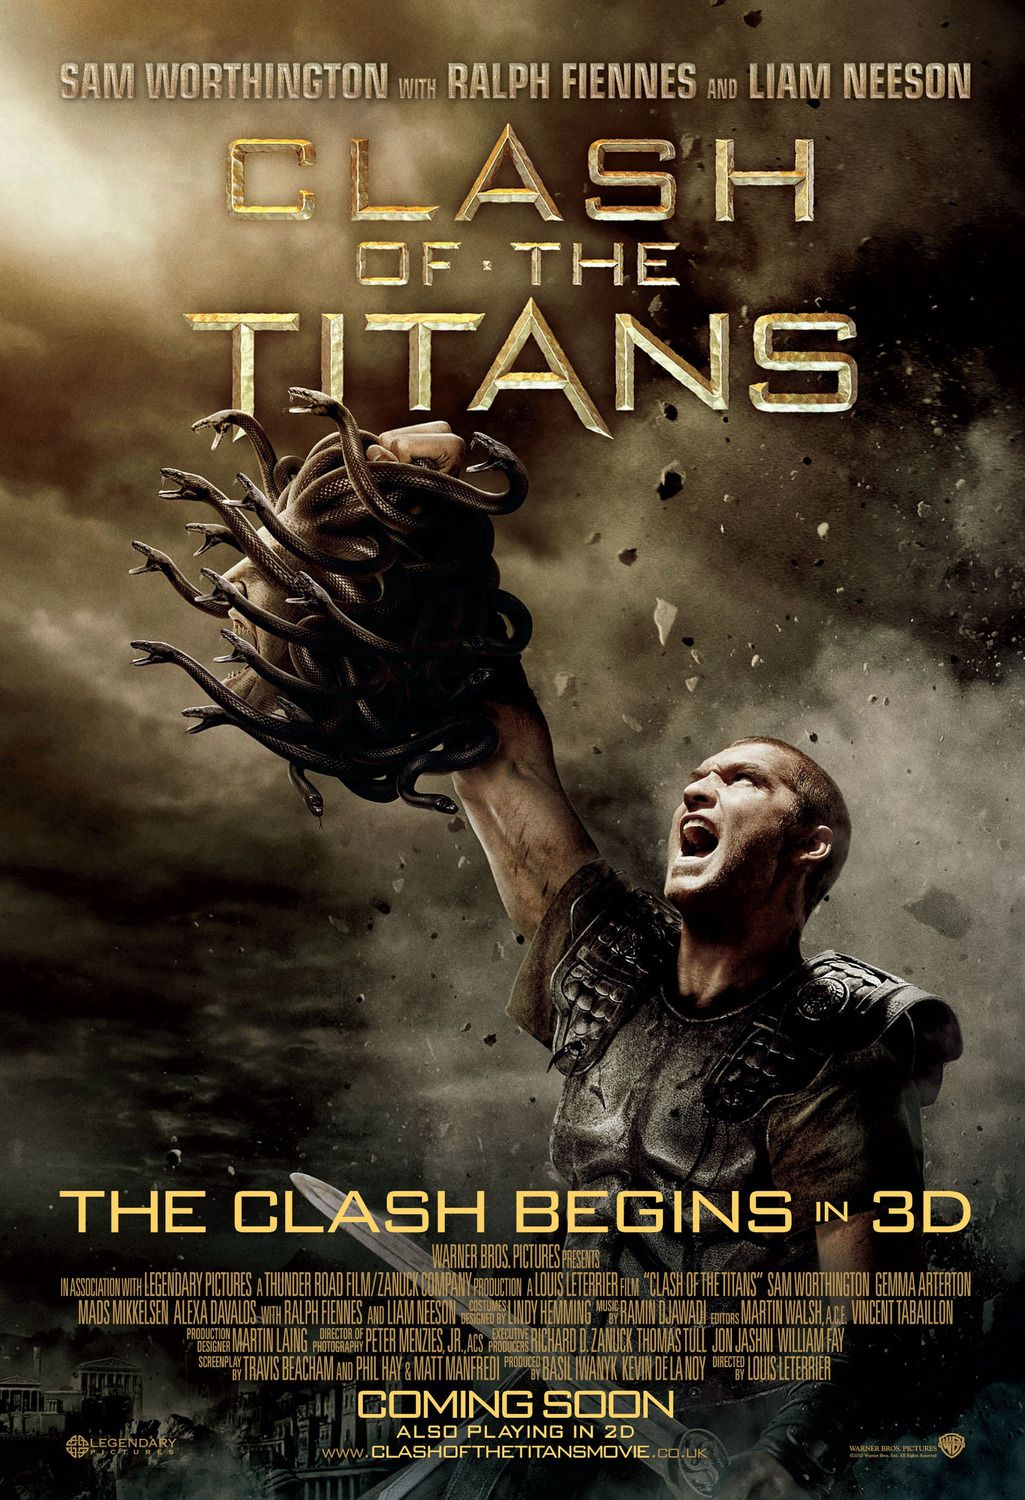 Clash of the Titans Movie Poster (#4 of 11)